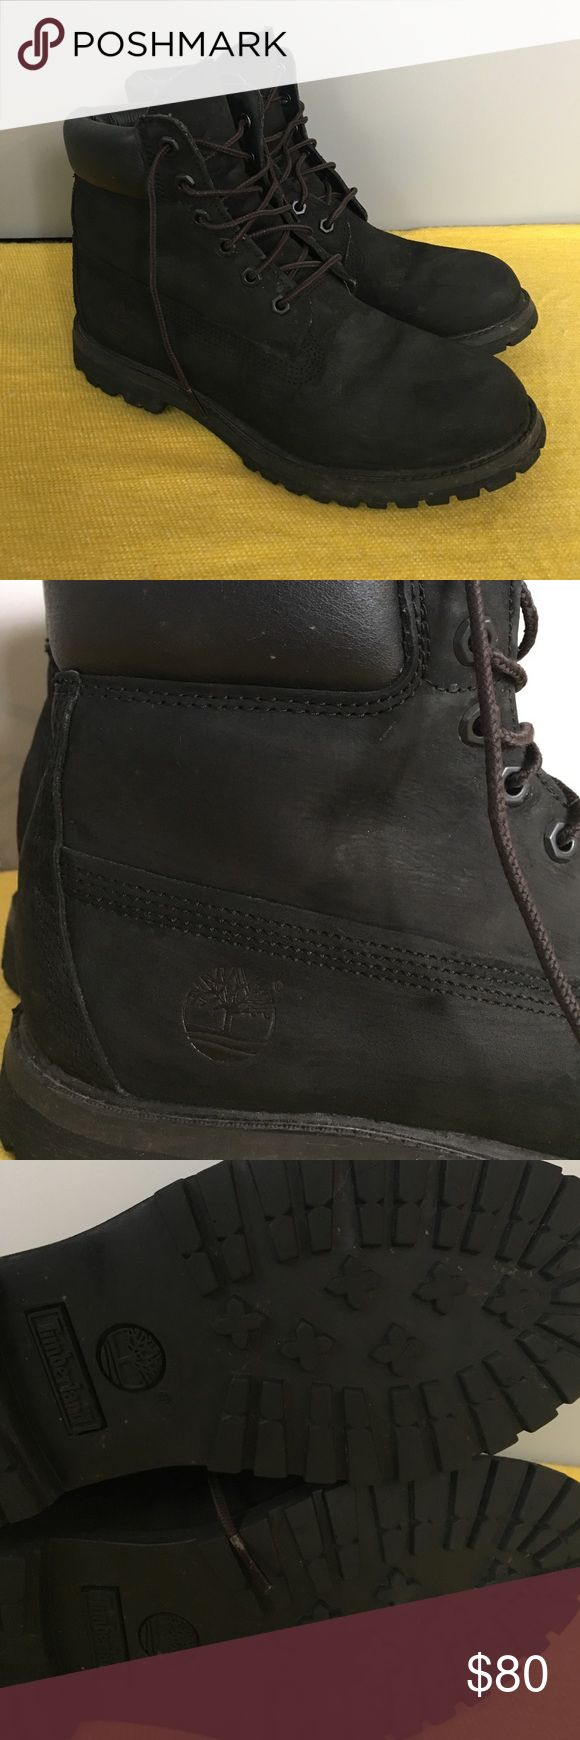 Black Timberlands Authentic Timberland boots. Minor wear. Size 9.5 women's (or 8 in men's). Timberland Shoes Winter & Rain Boots